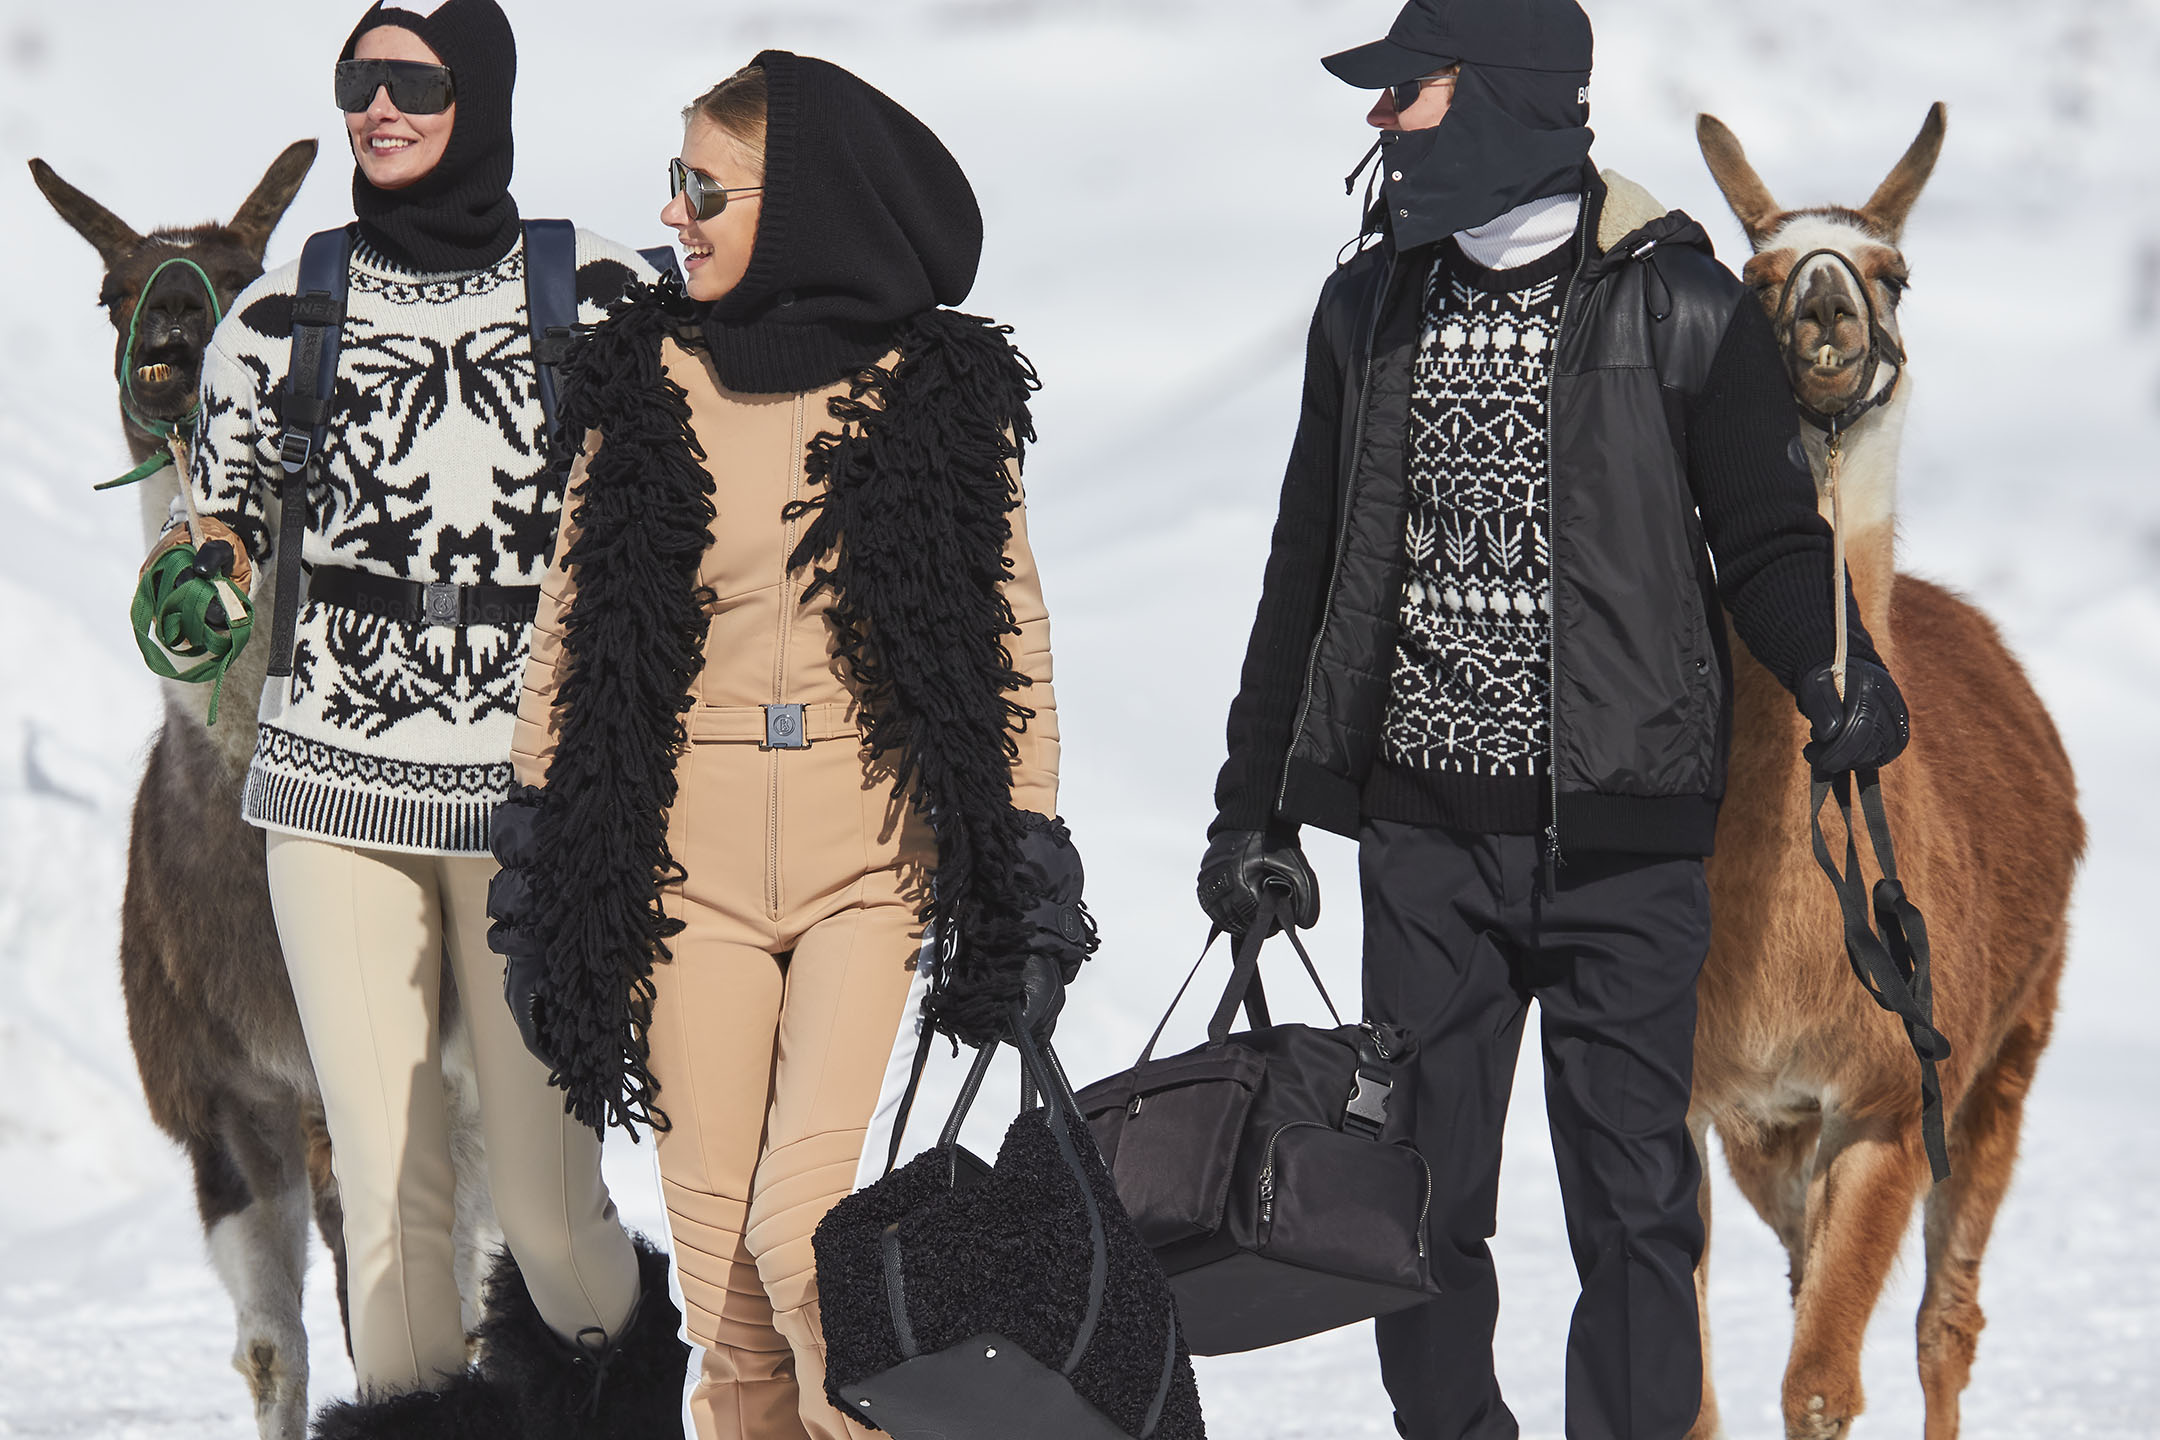 The new Bogner campaign was photographed in Switzerland.